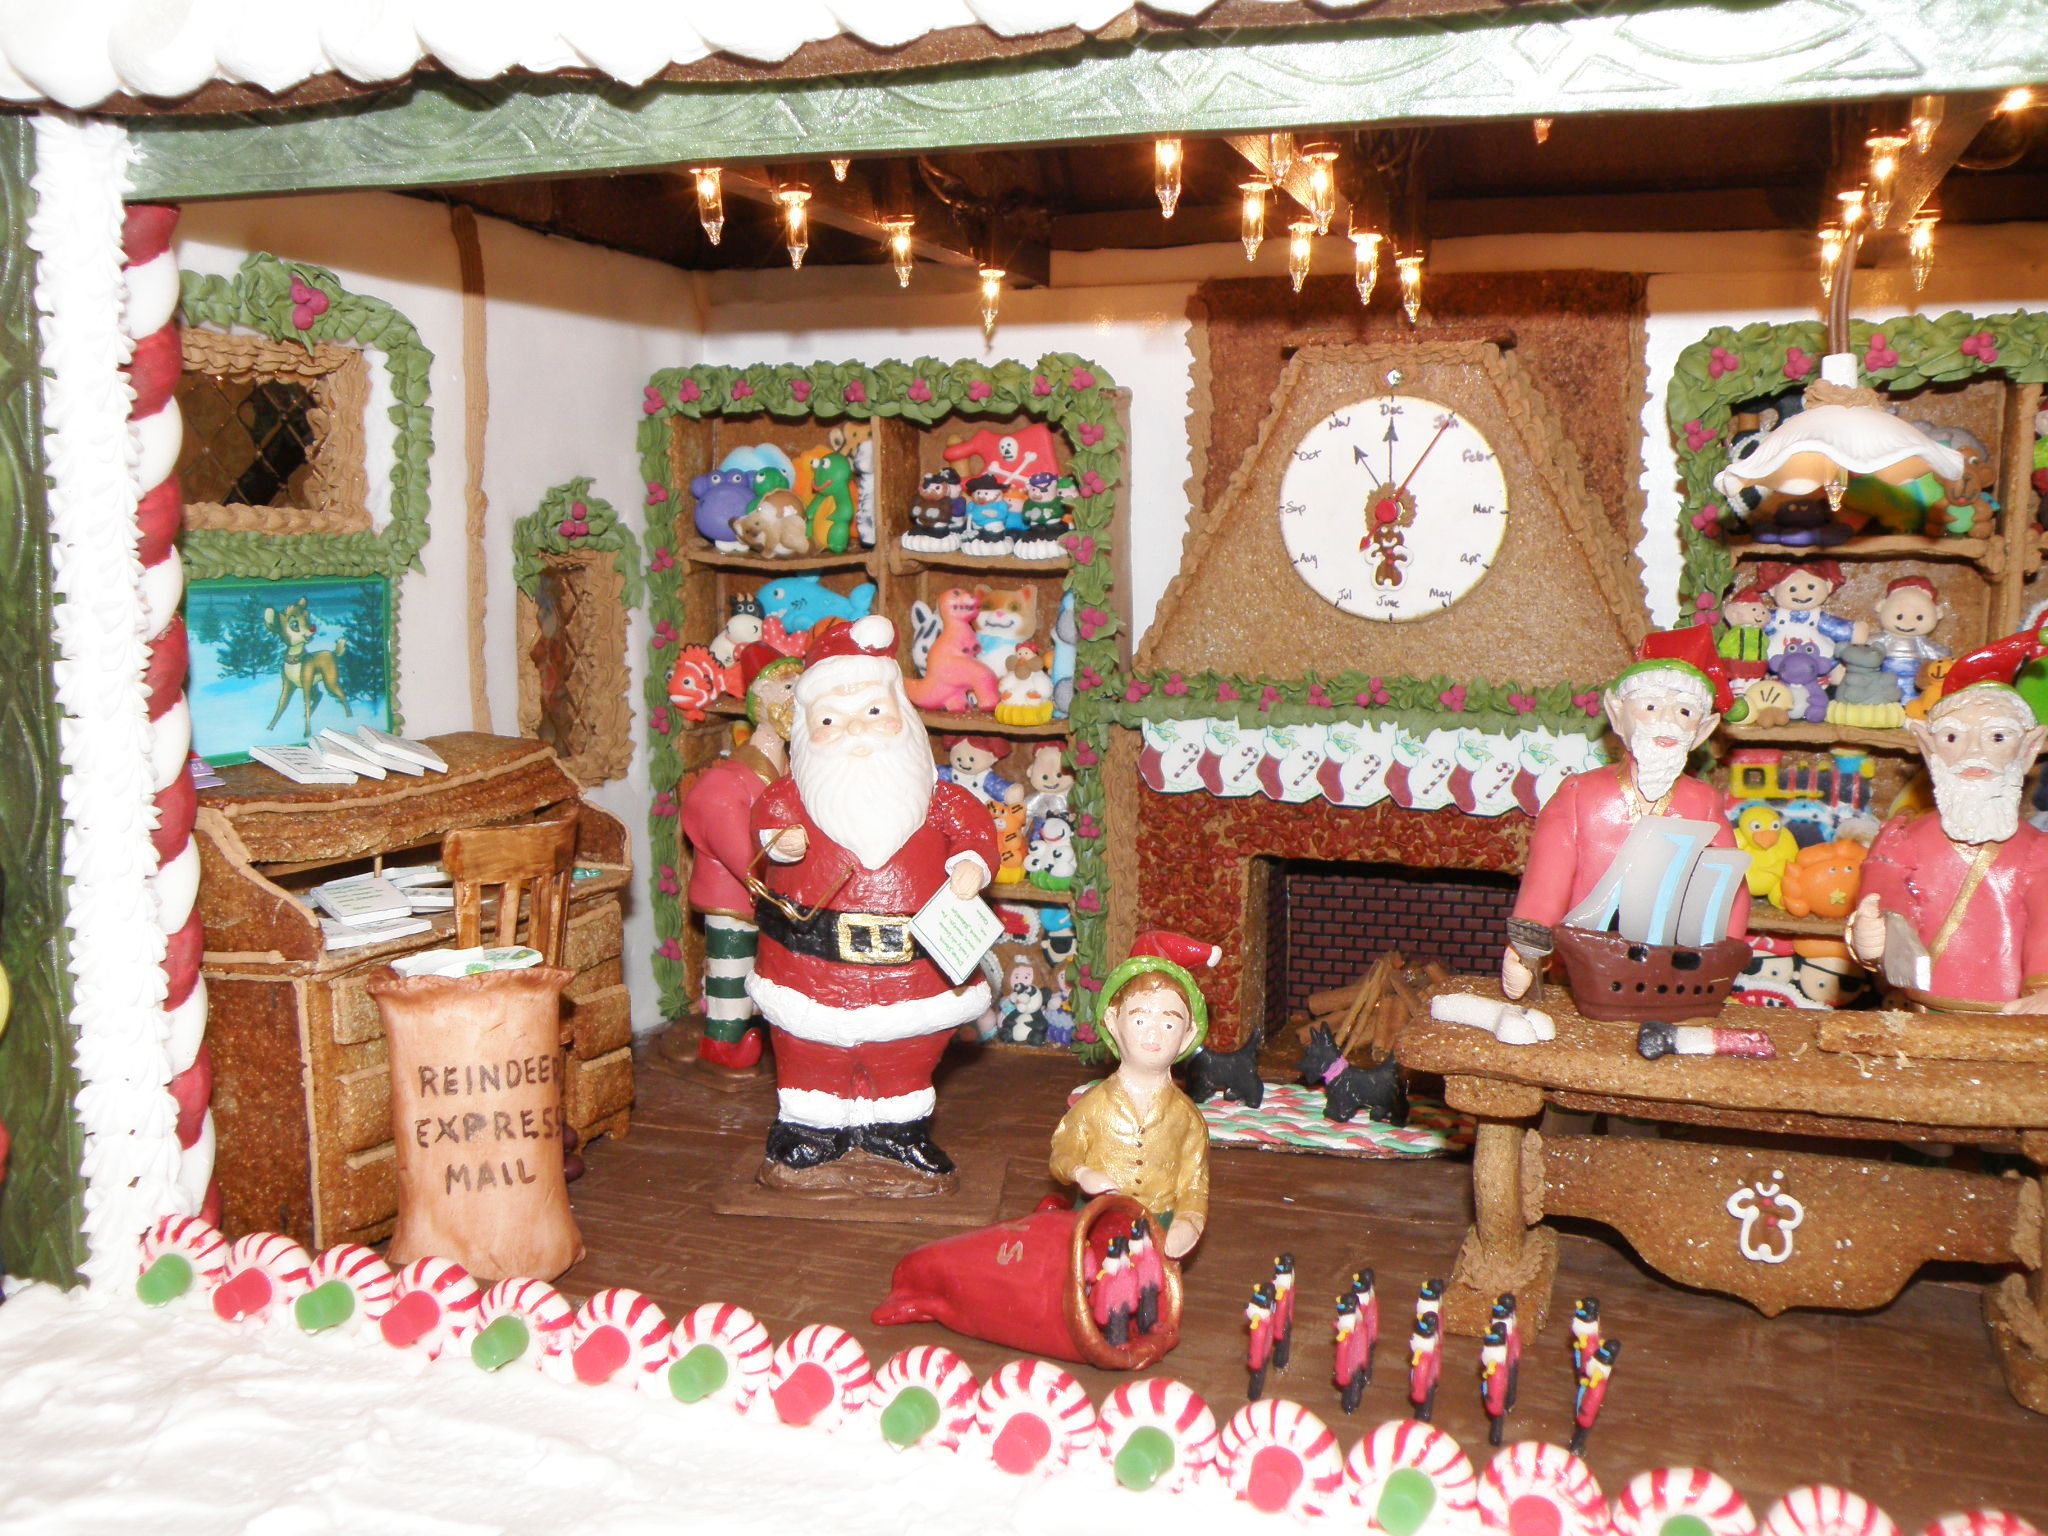 1000+ images about Gingerbread House Interiors on ...